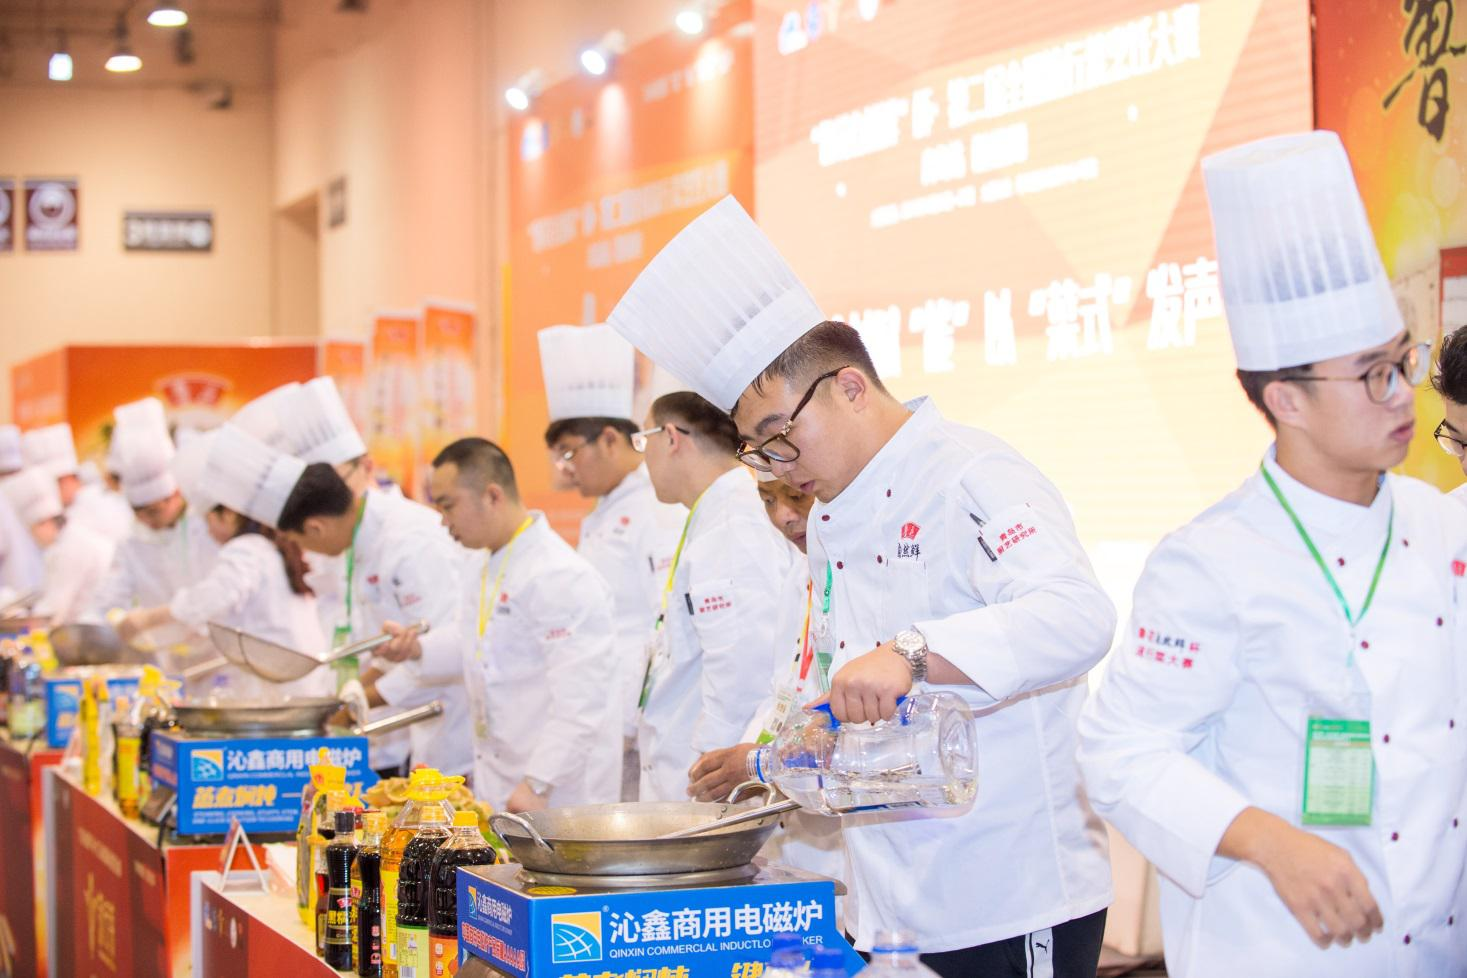 Induction cookers: Chinese Cuisine Cooking Competition